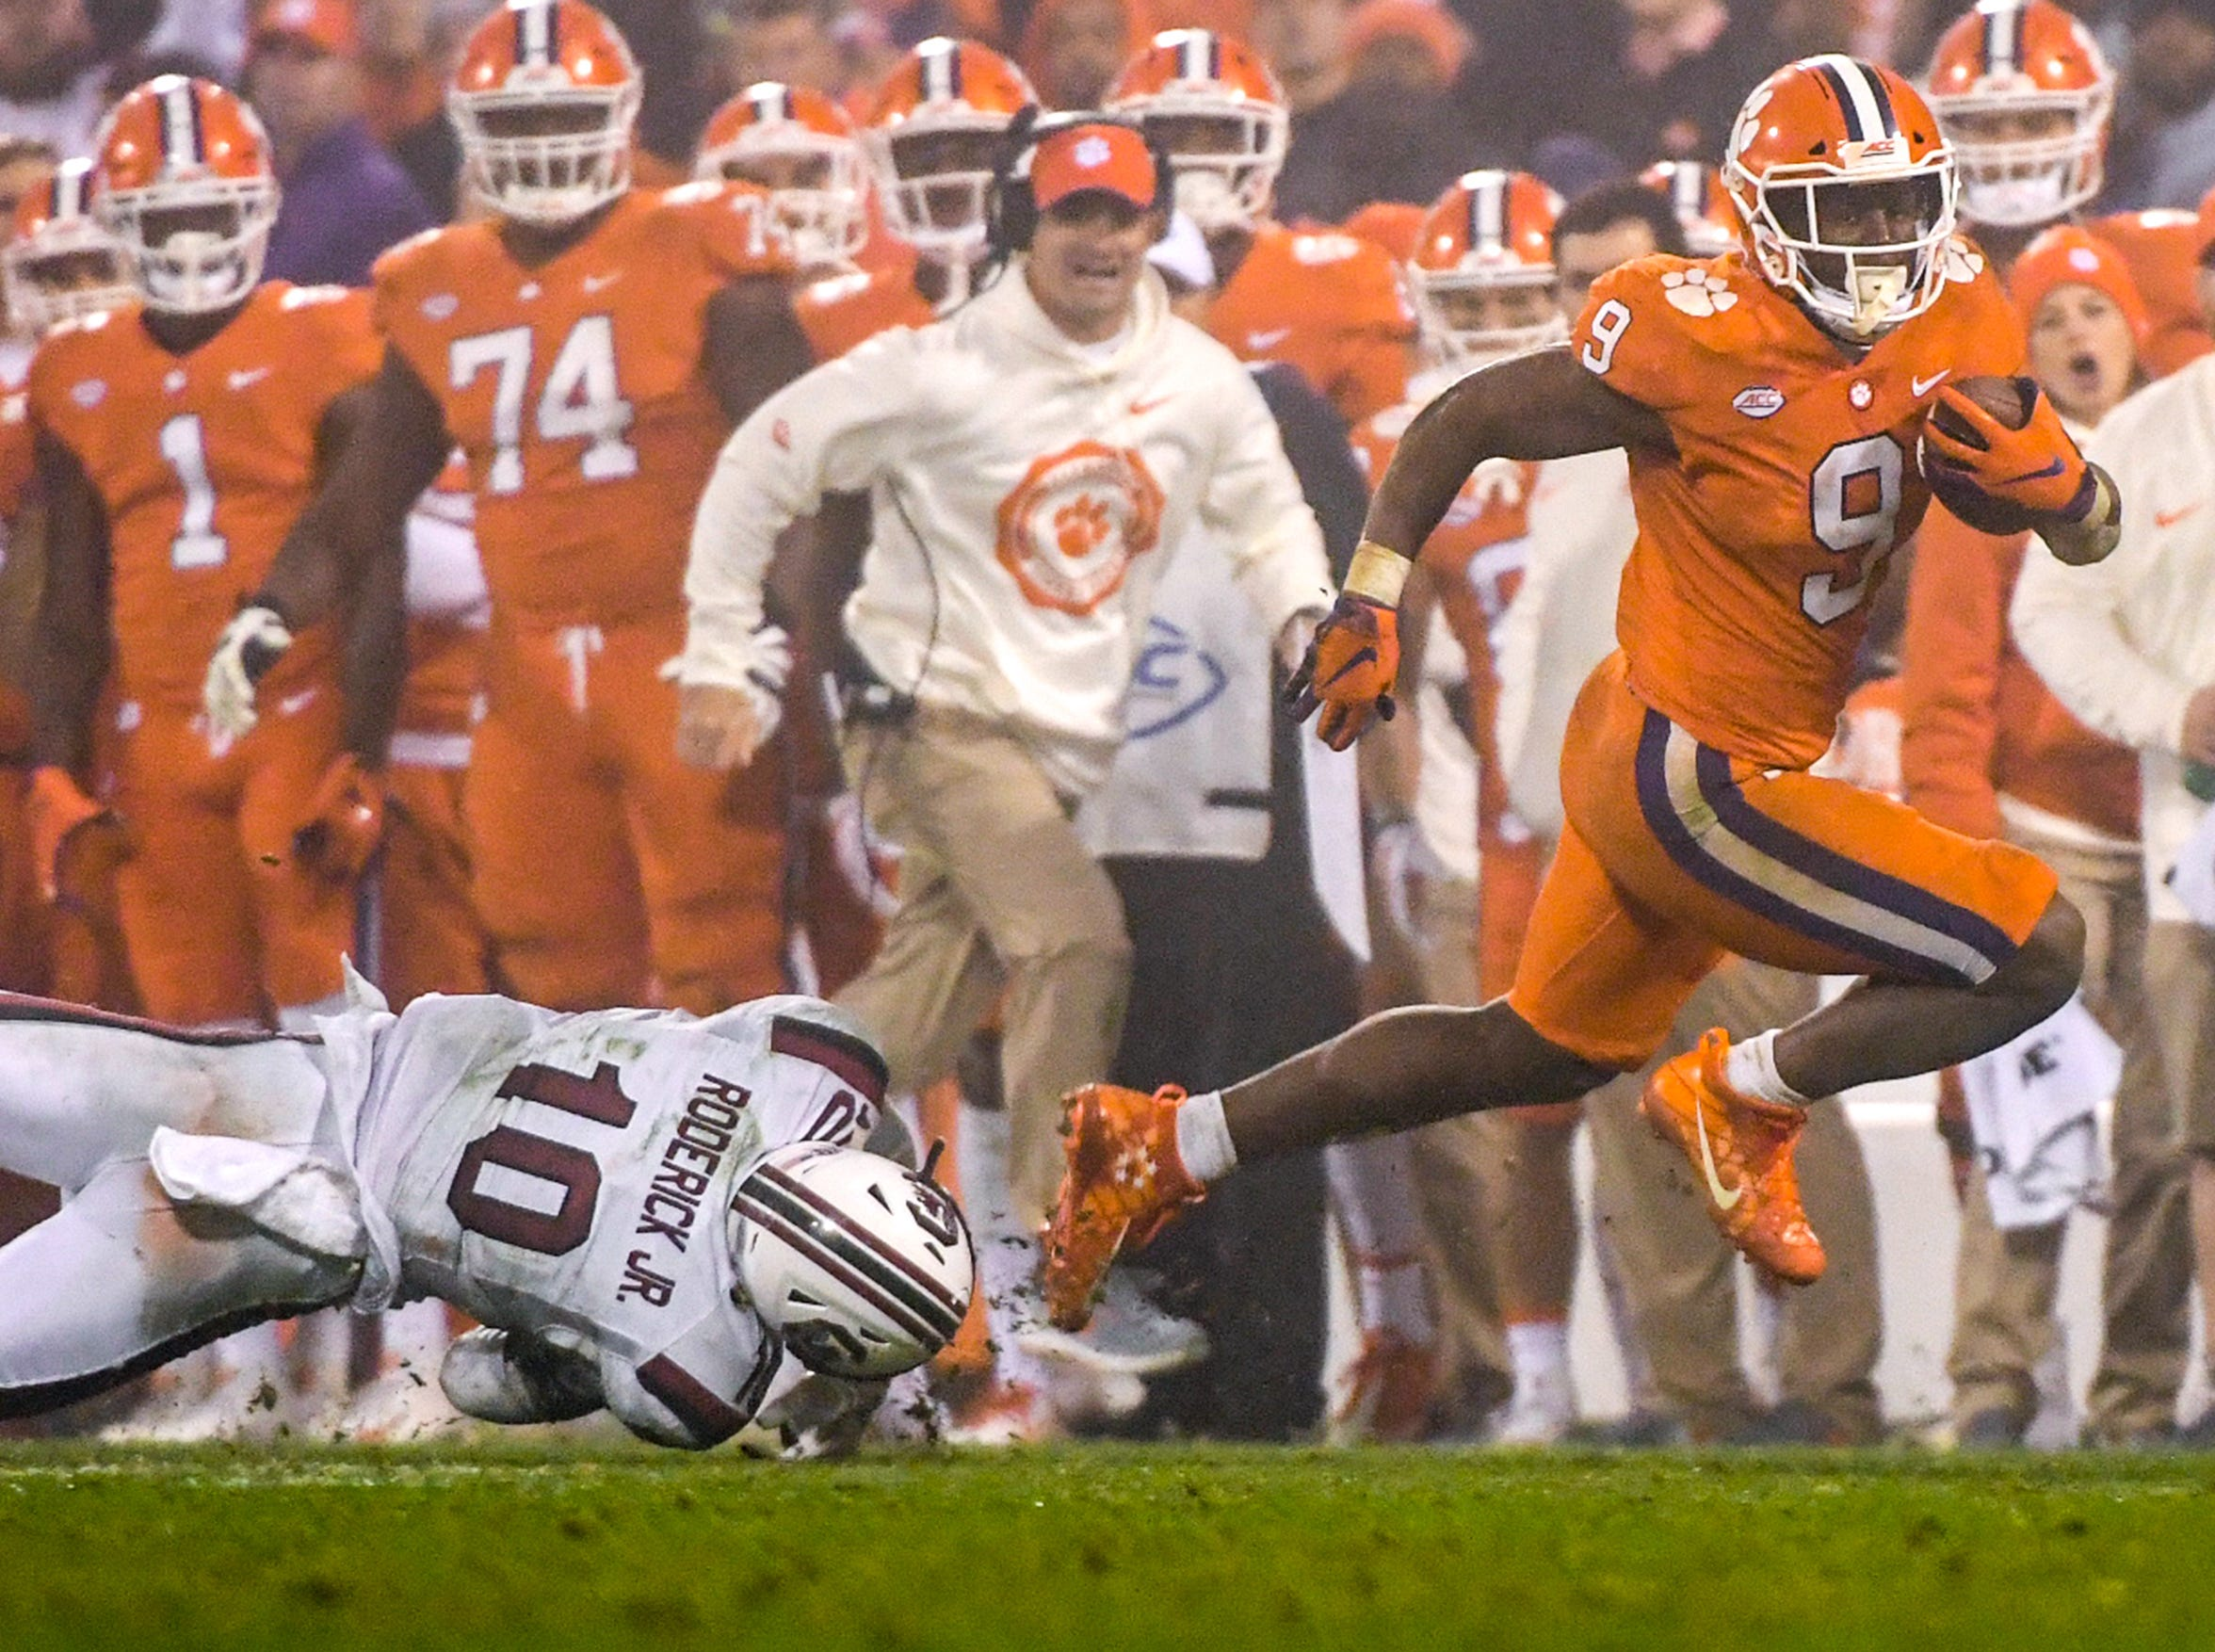 Clemson running back Travis Etienne (9) runs by South Carolina defensive back R.J. Roderick(10) during the fourth quarter in Memorial Stadium on Saturday, November 24, 2018.